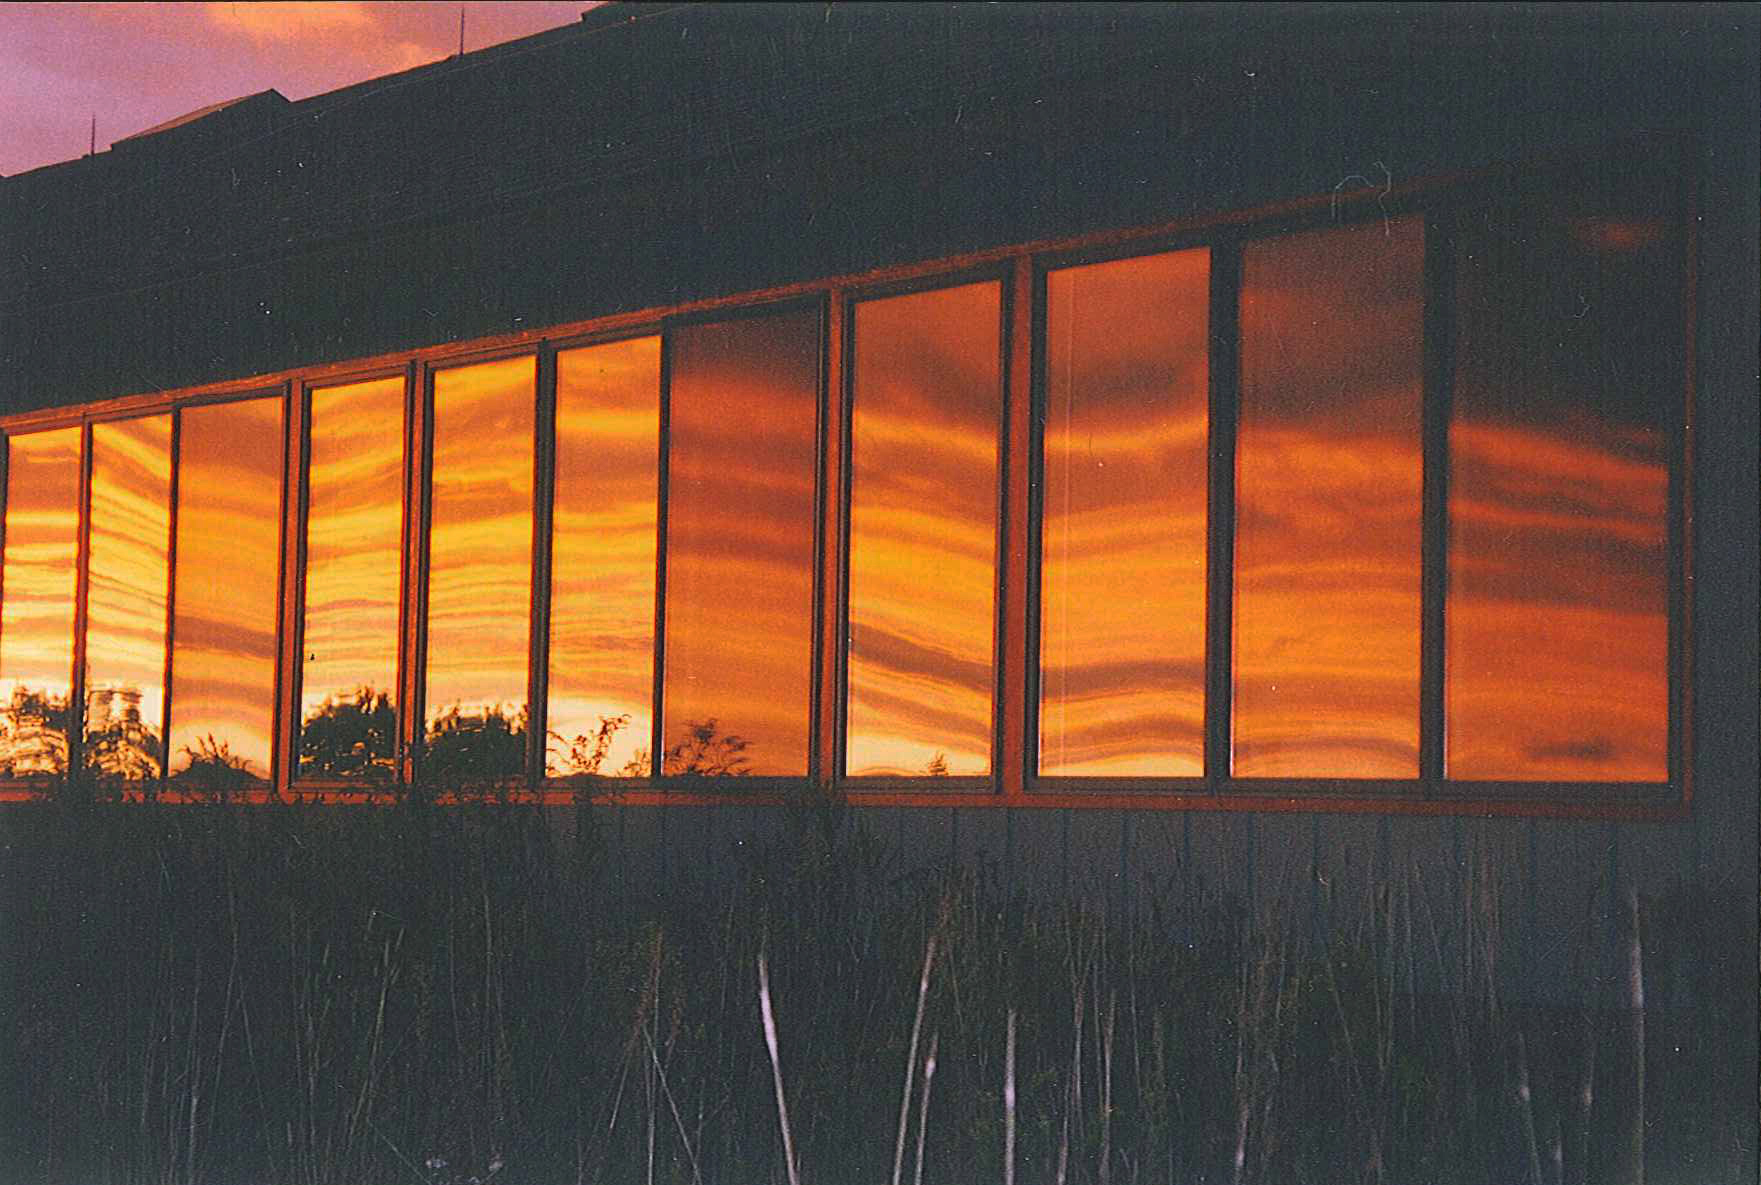 Sunset-Reflected-in-Lodge-Windows